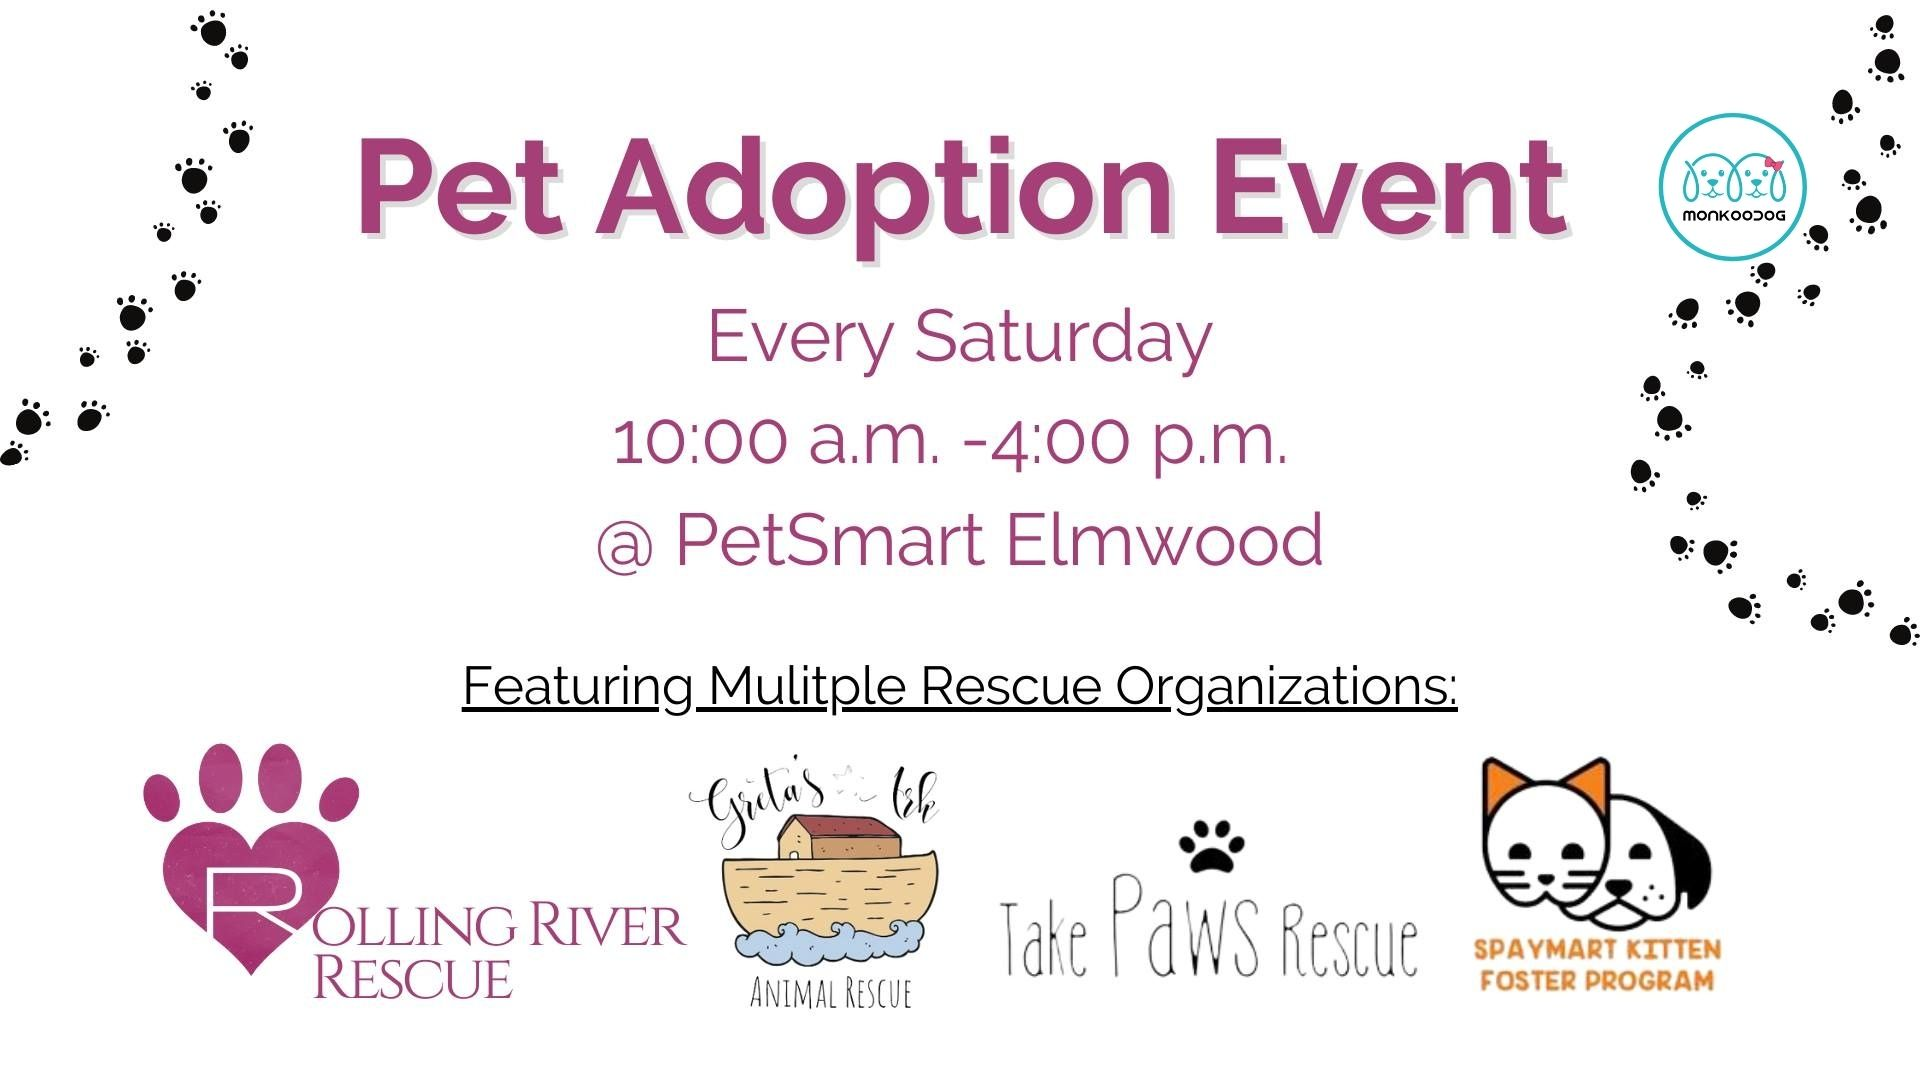 Upcoming pet event -Pet Adoption Event By Rolling River Rescue